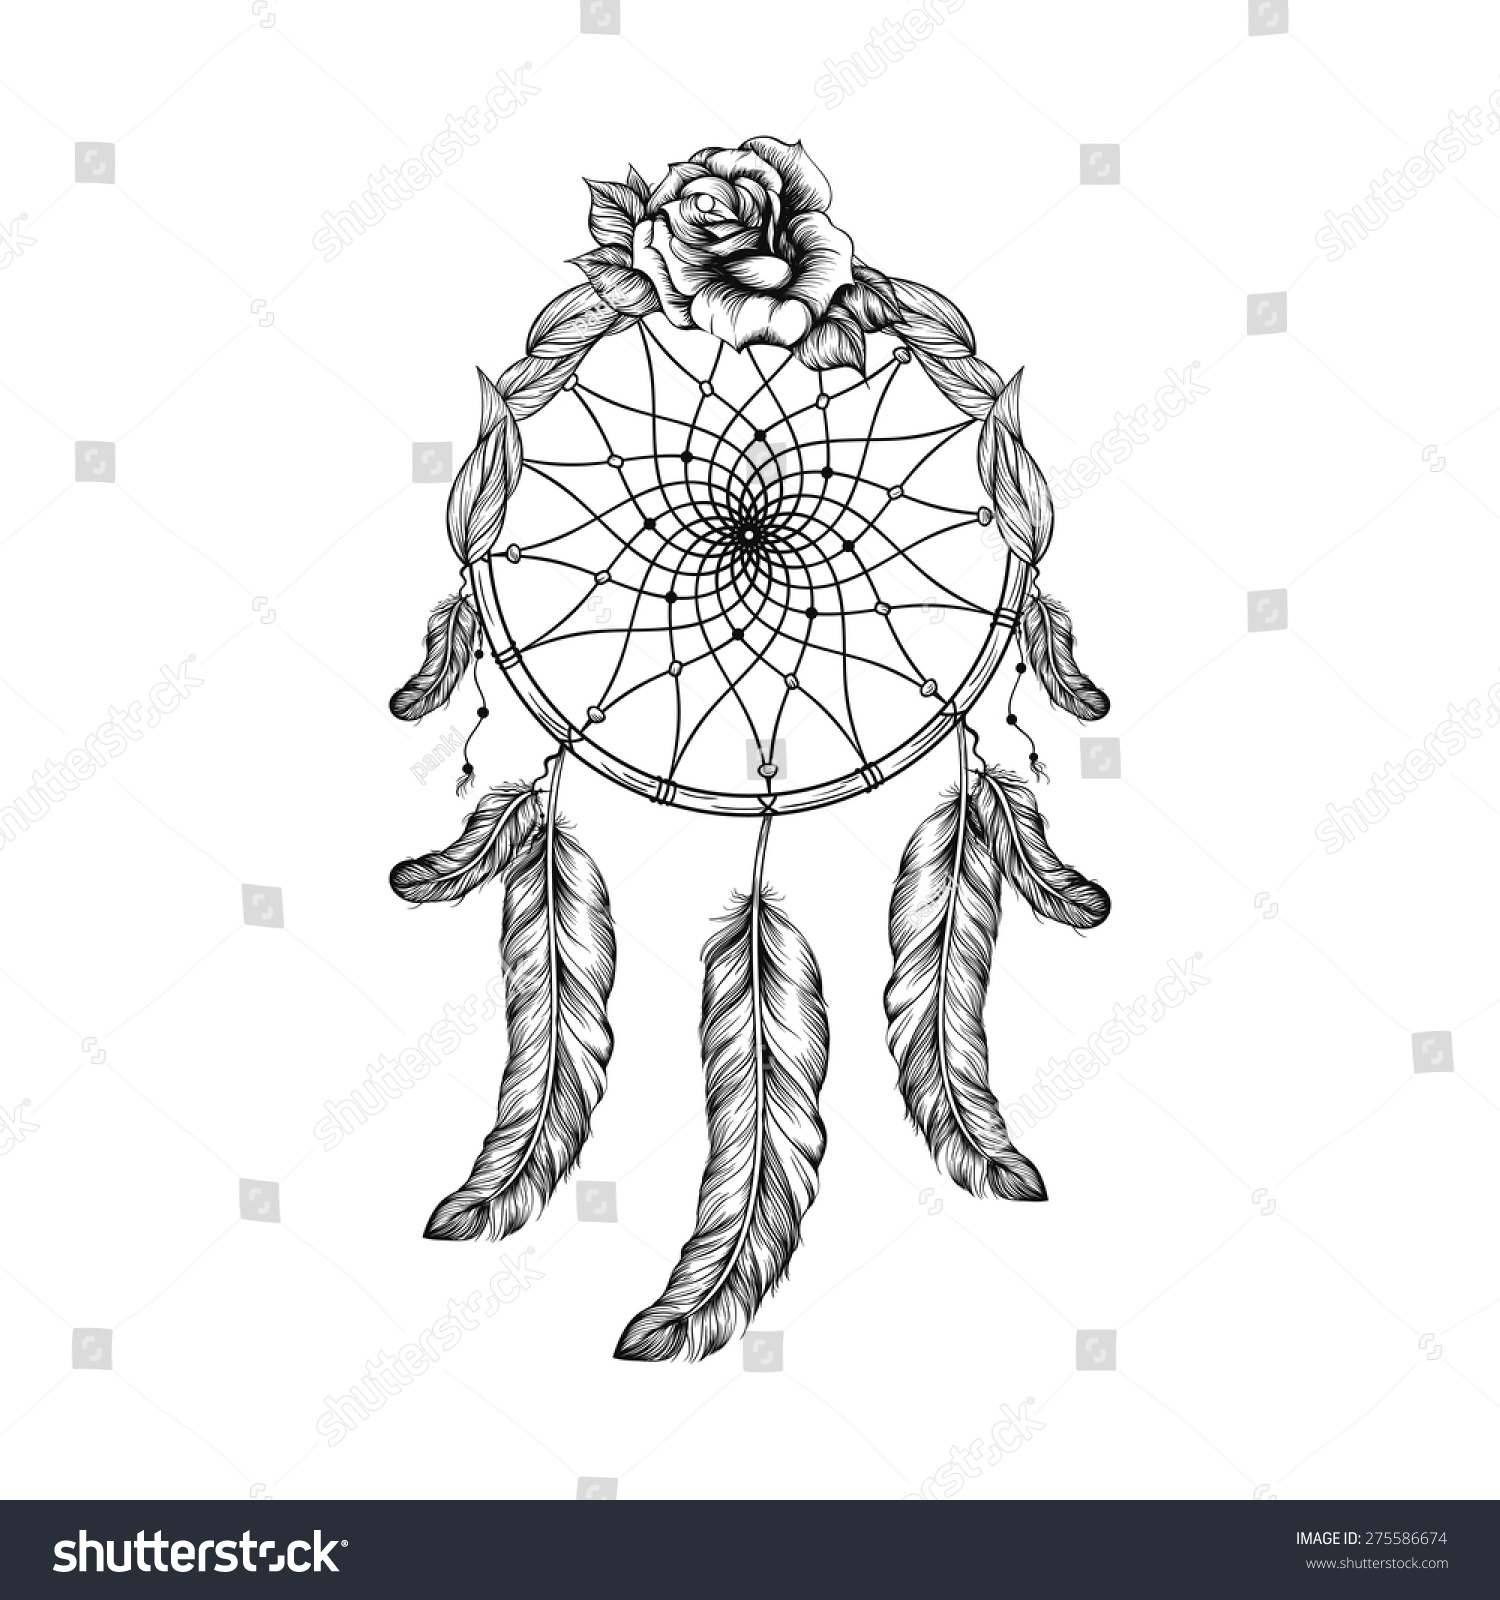 Line Art Styles : Dream catcher with feathers leaves and rose in line art